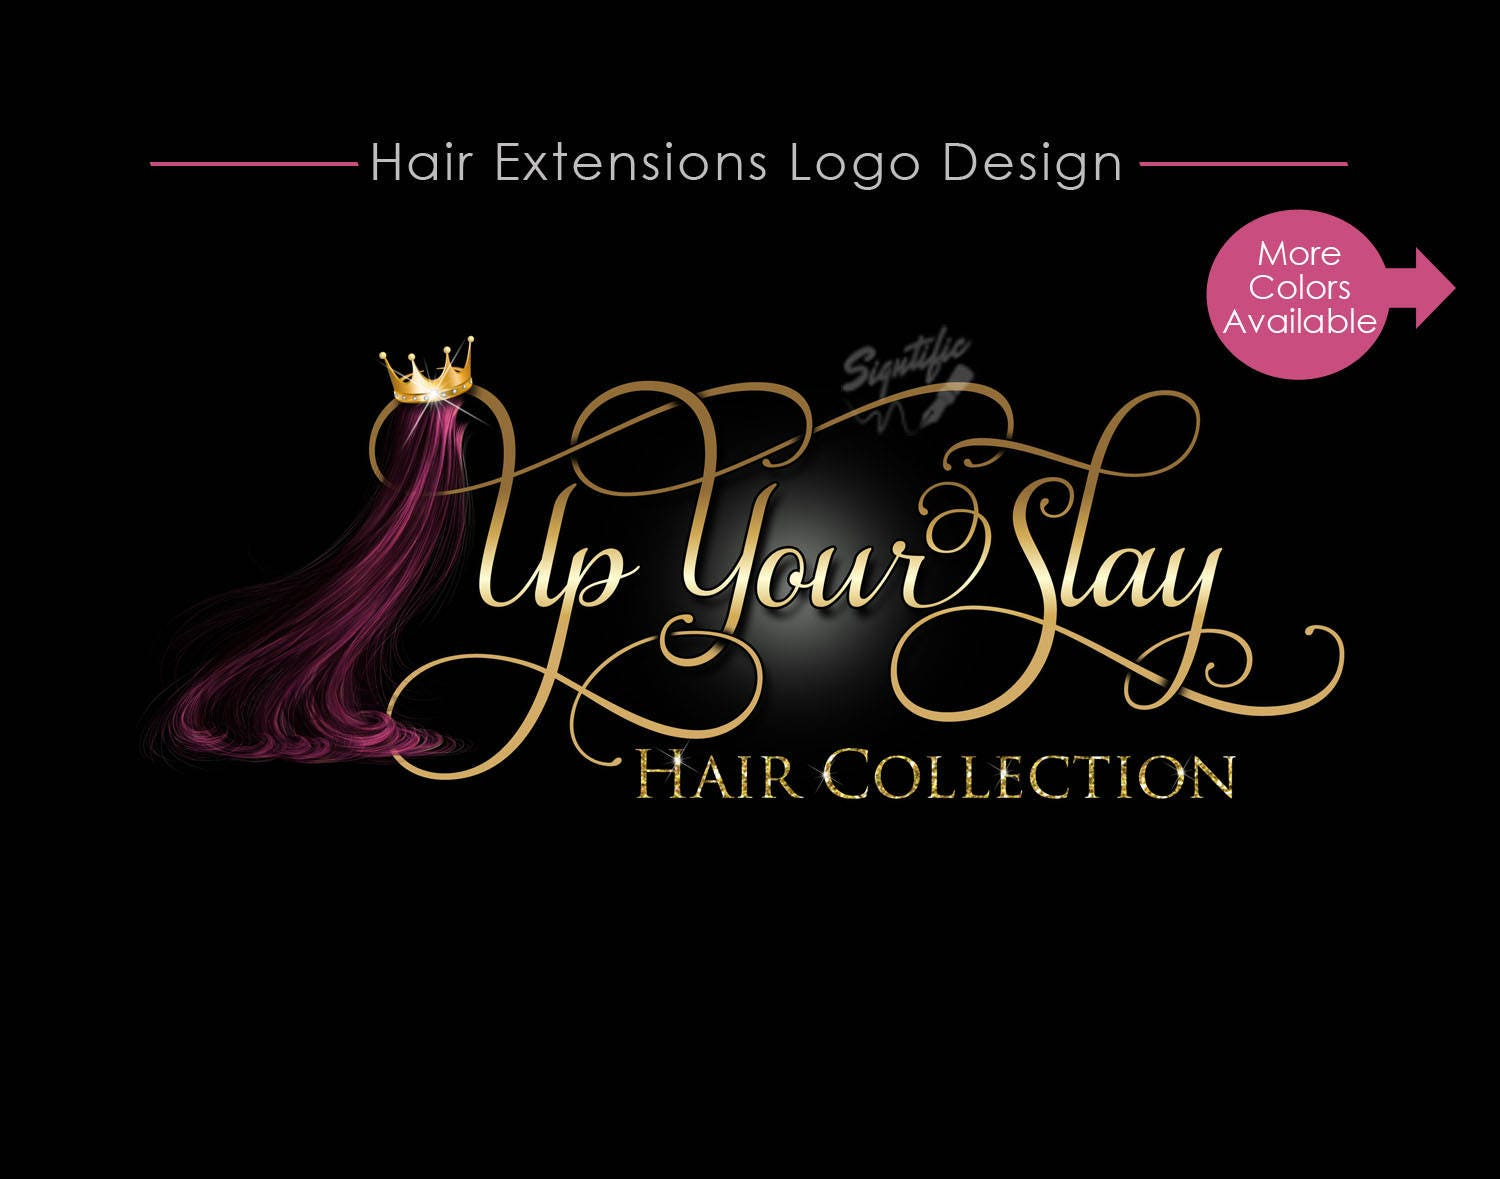 hair business logo hair logo design hair collection logo hair